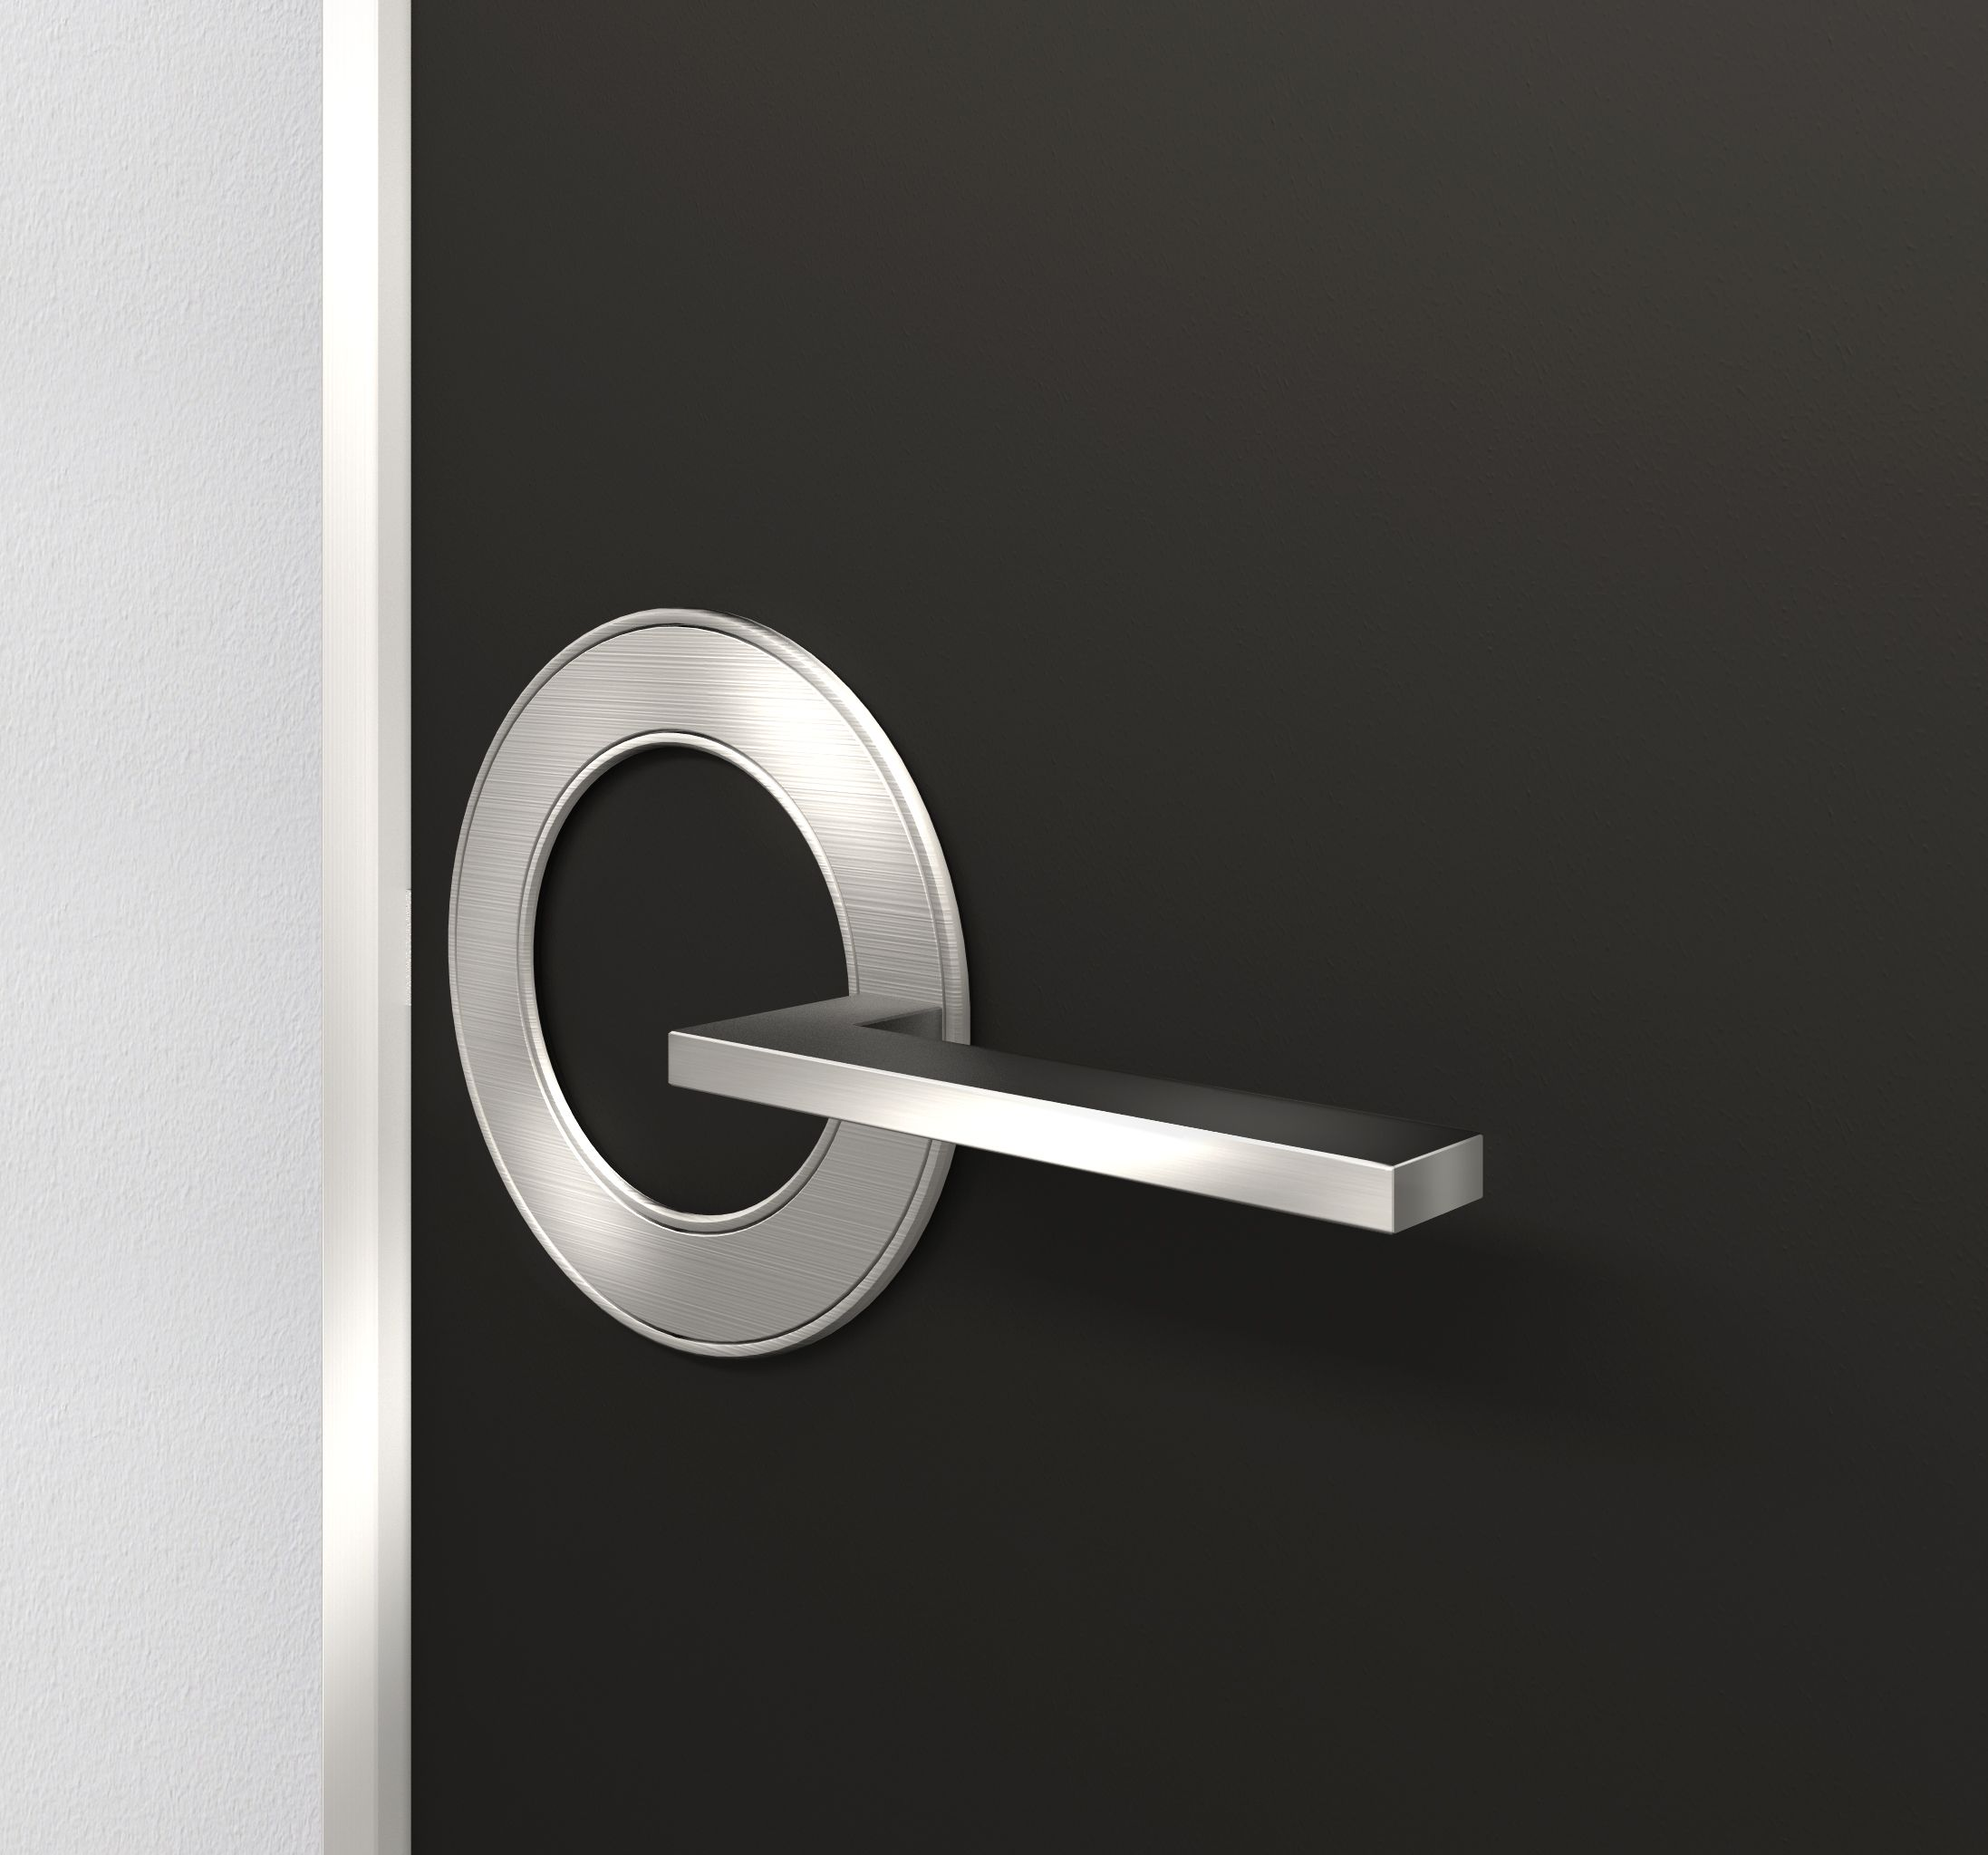 The Orb Door Handle Like The Design And Concept Behind This Lever Design More Suited For